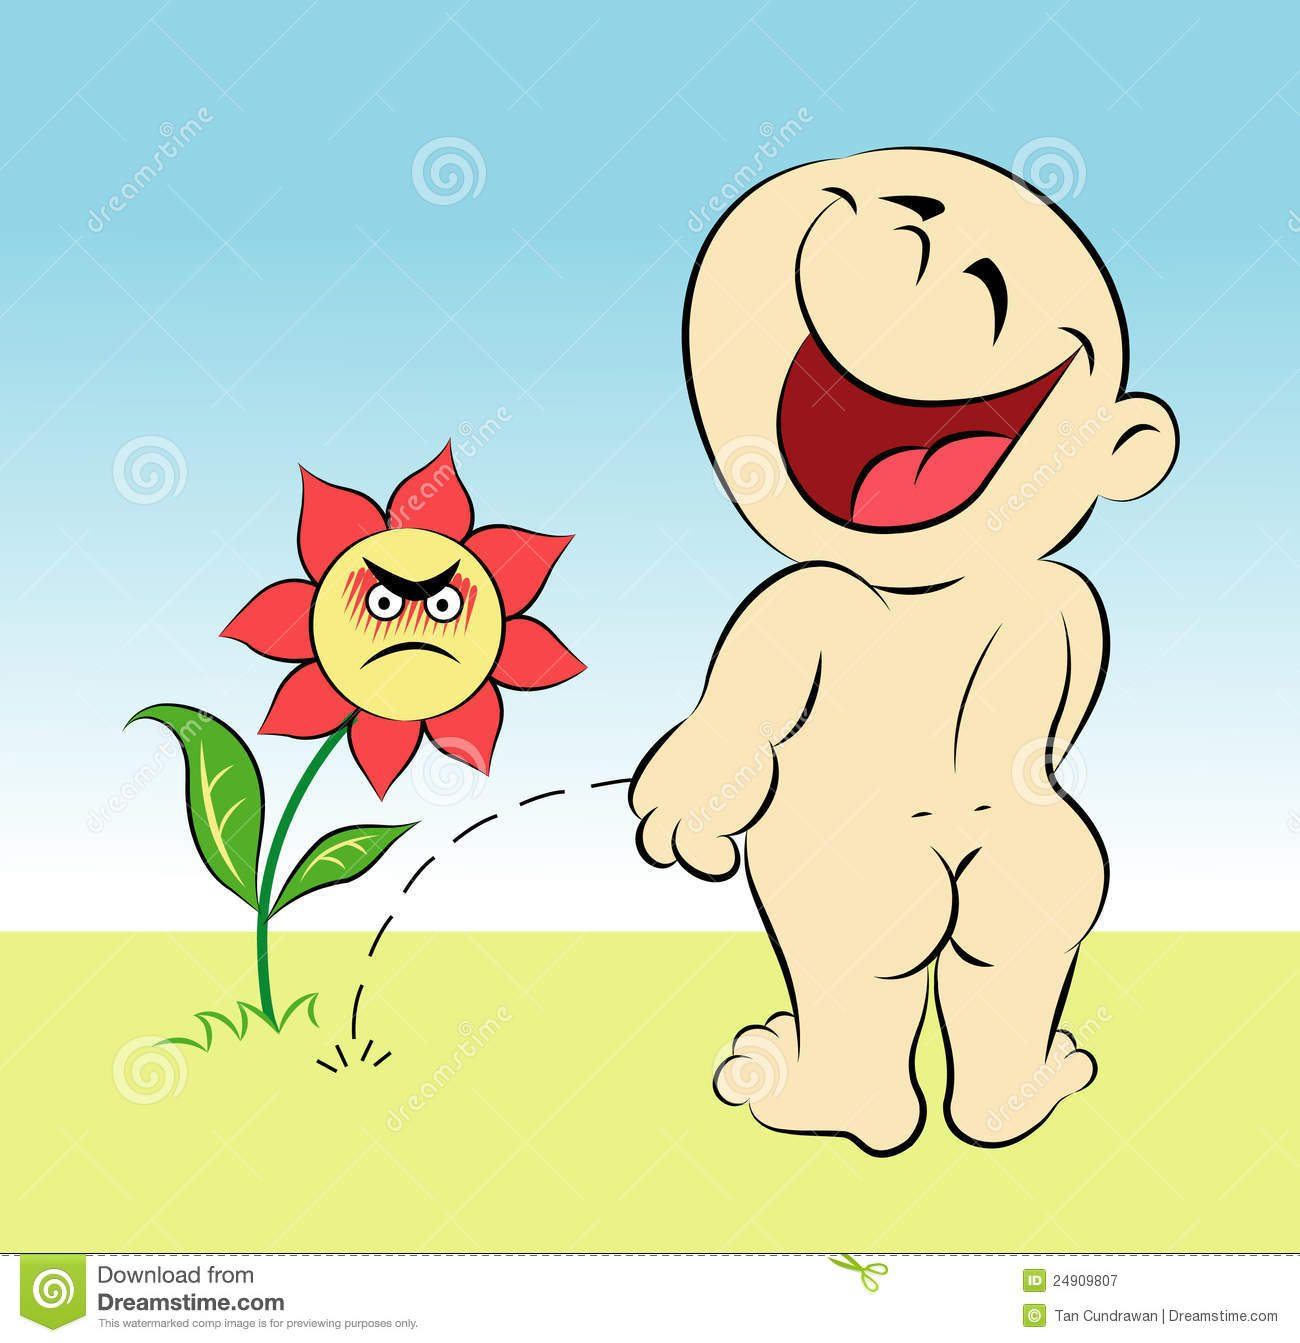 happy-baby-flower-cartoon-24909807.jpg